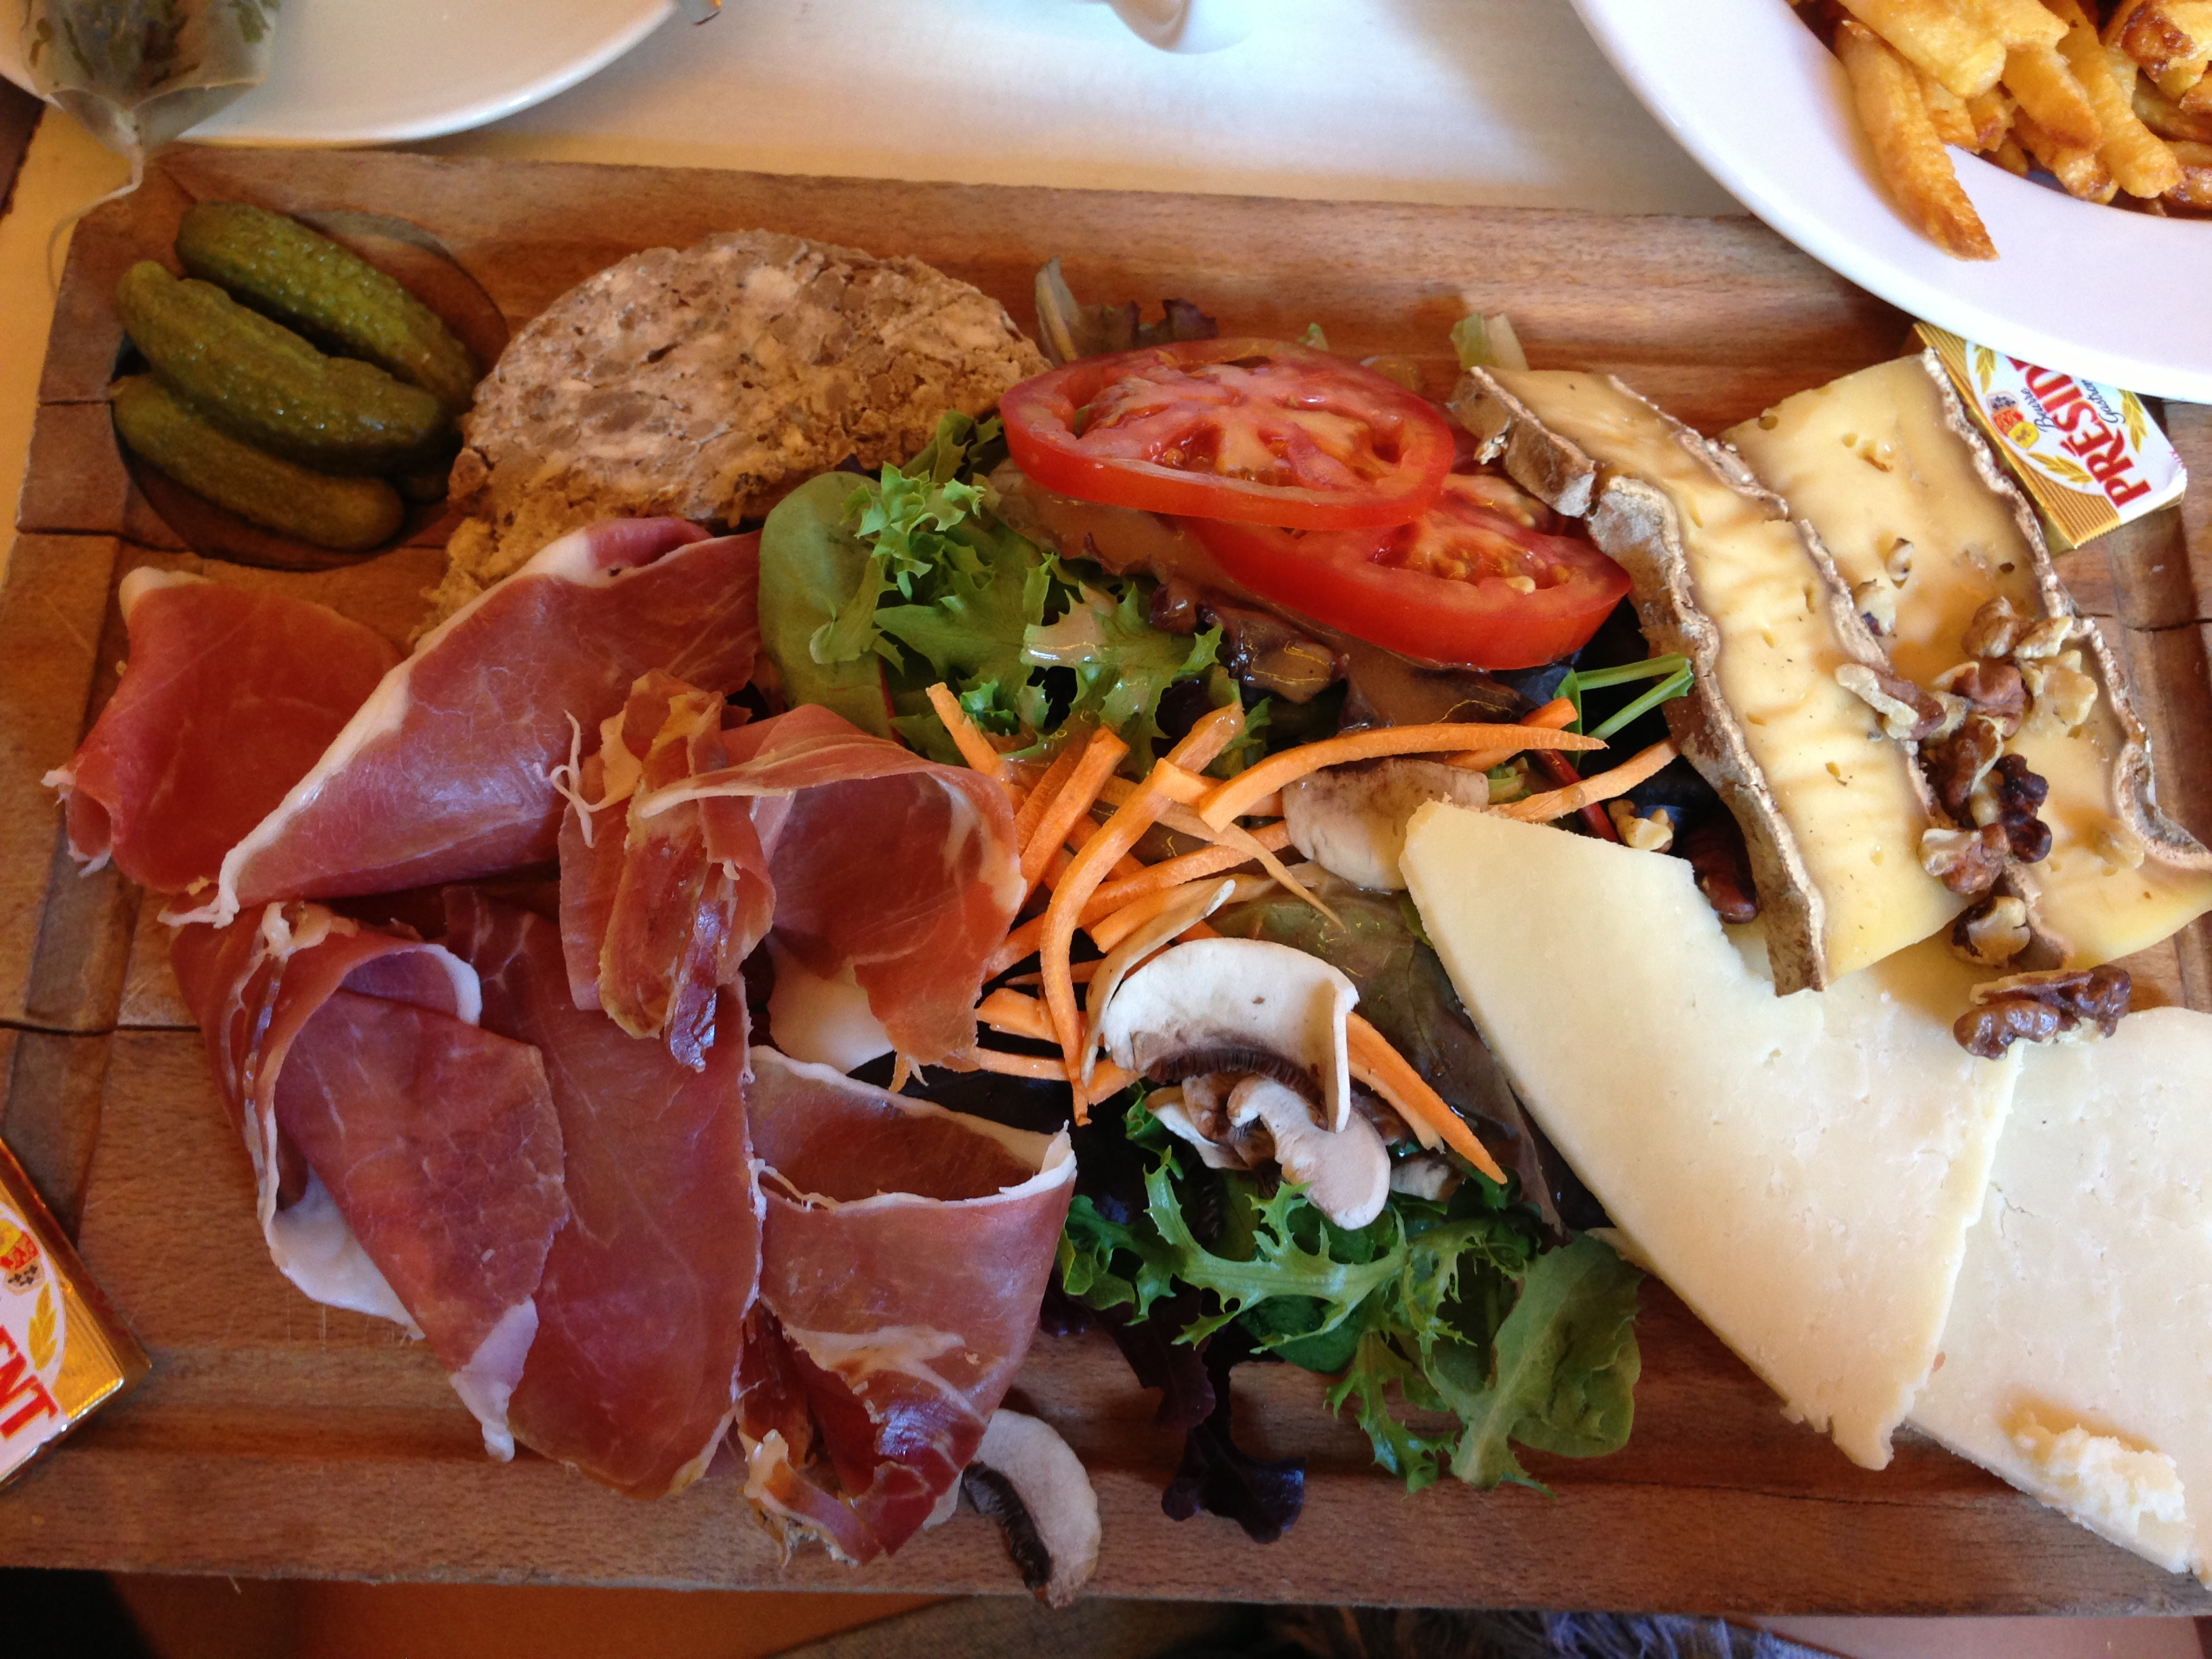 2 Moulins Charcuterie Board: Serrano Ham, Terrine from Auvergne, Cheese, Cantal Cheese, Walnuts, Salad